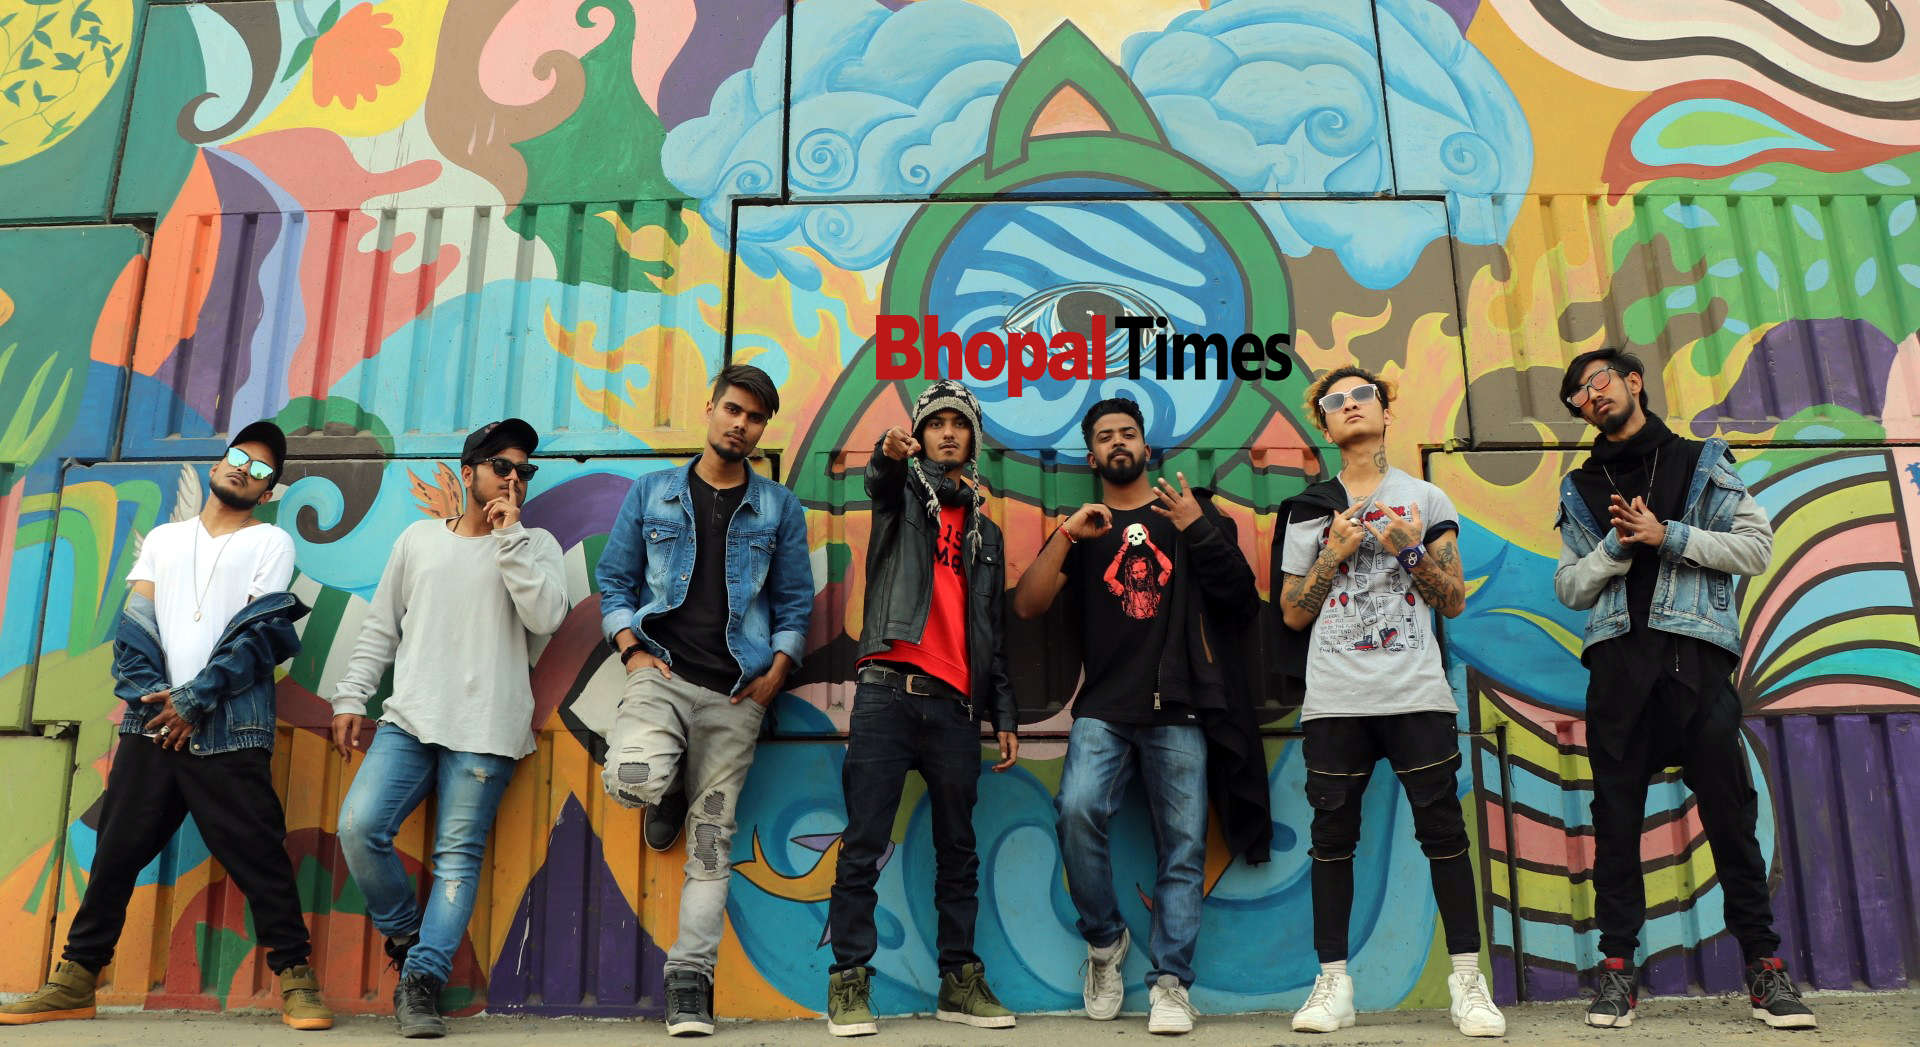 Budding rappers of Bhopal